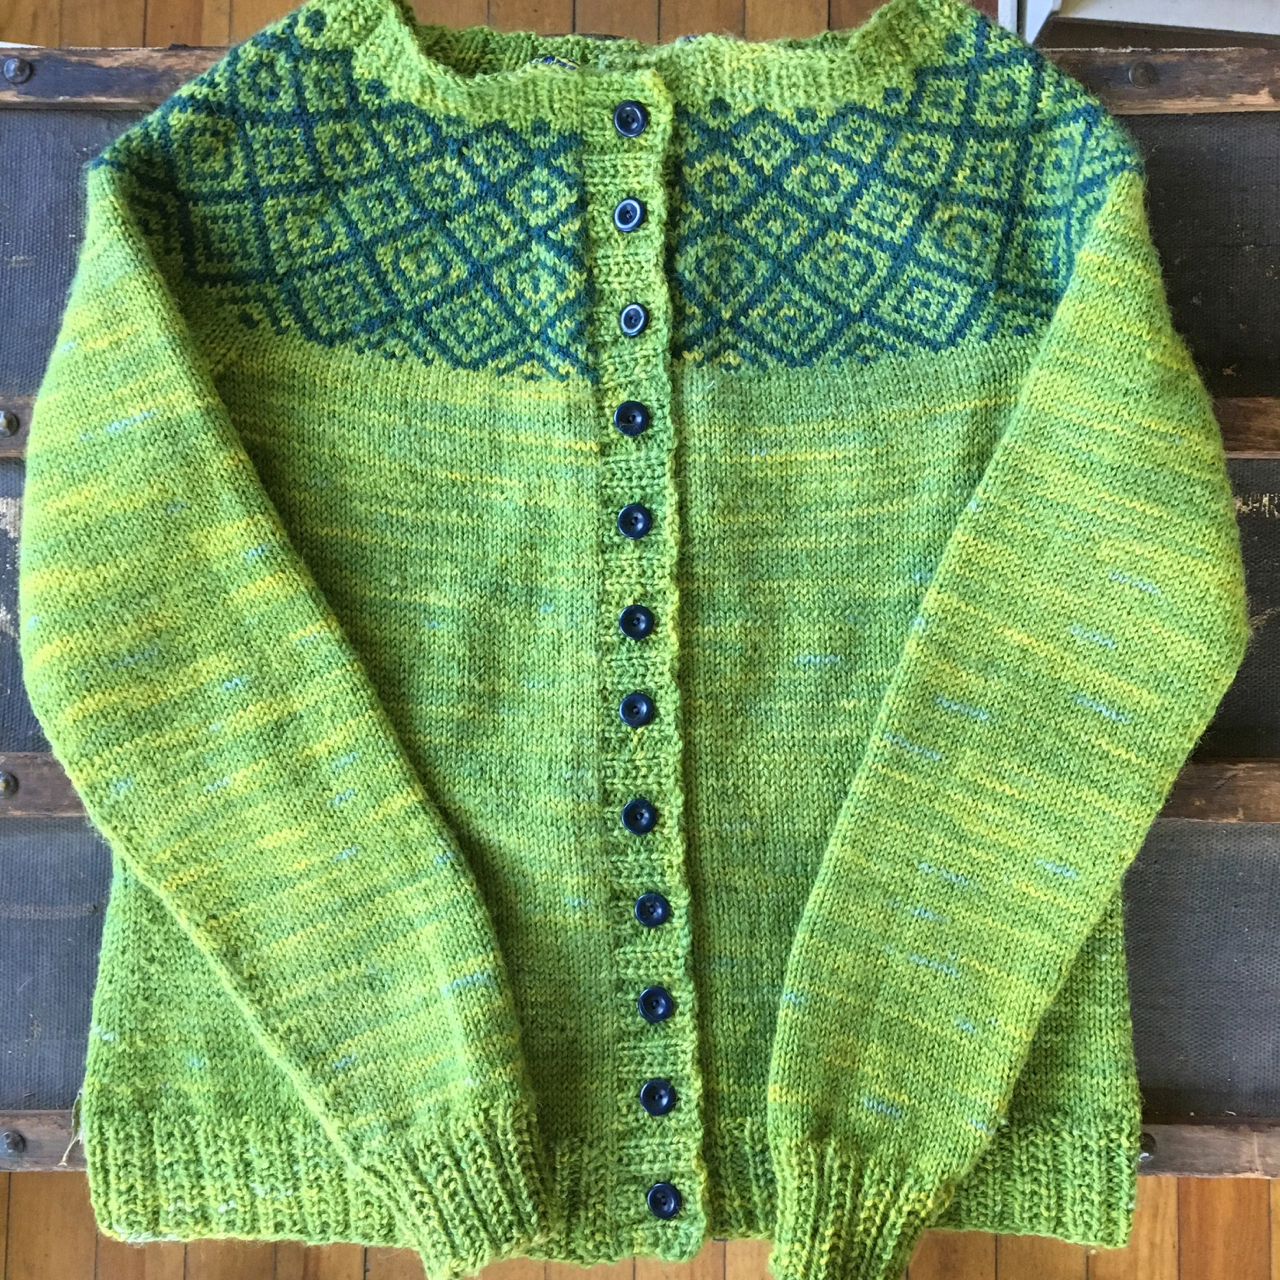 Kate Davie's Epistrophy, knit with the BFL DK weight yarn spun from 2015 fleece, in Aspen (lighter green) and Tongas (at the yoke). Buttons from Fringe Supply Company